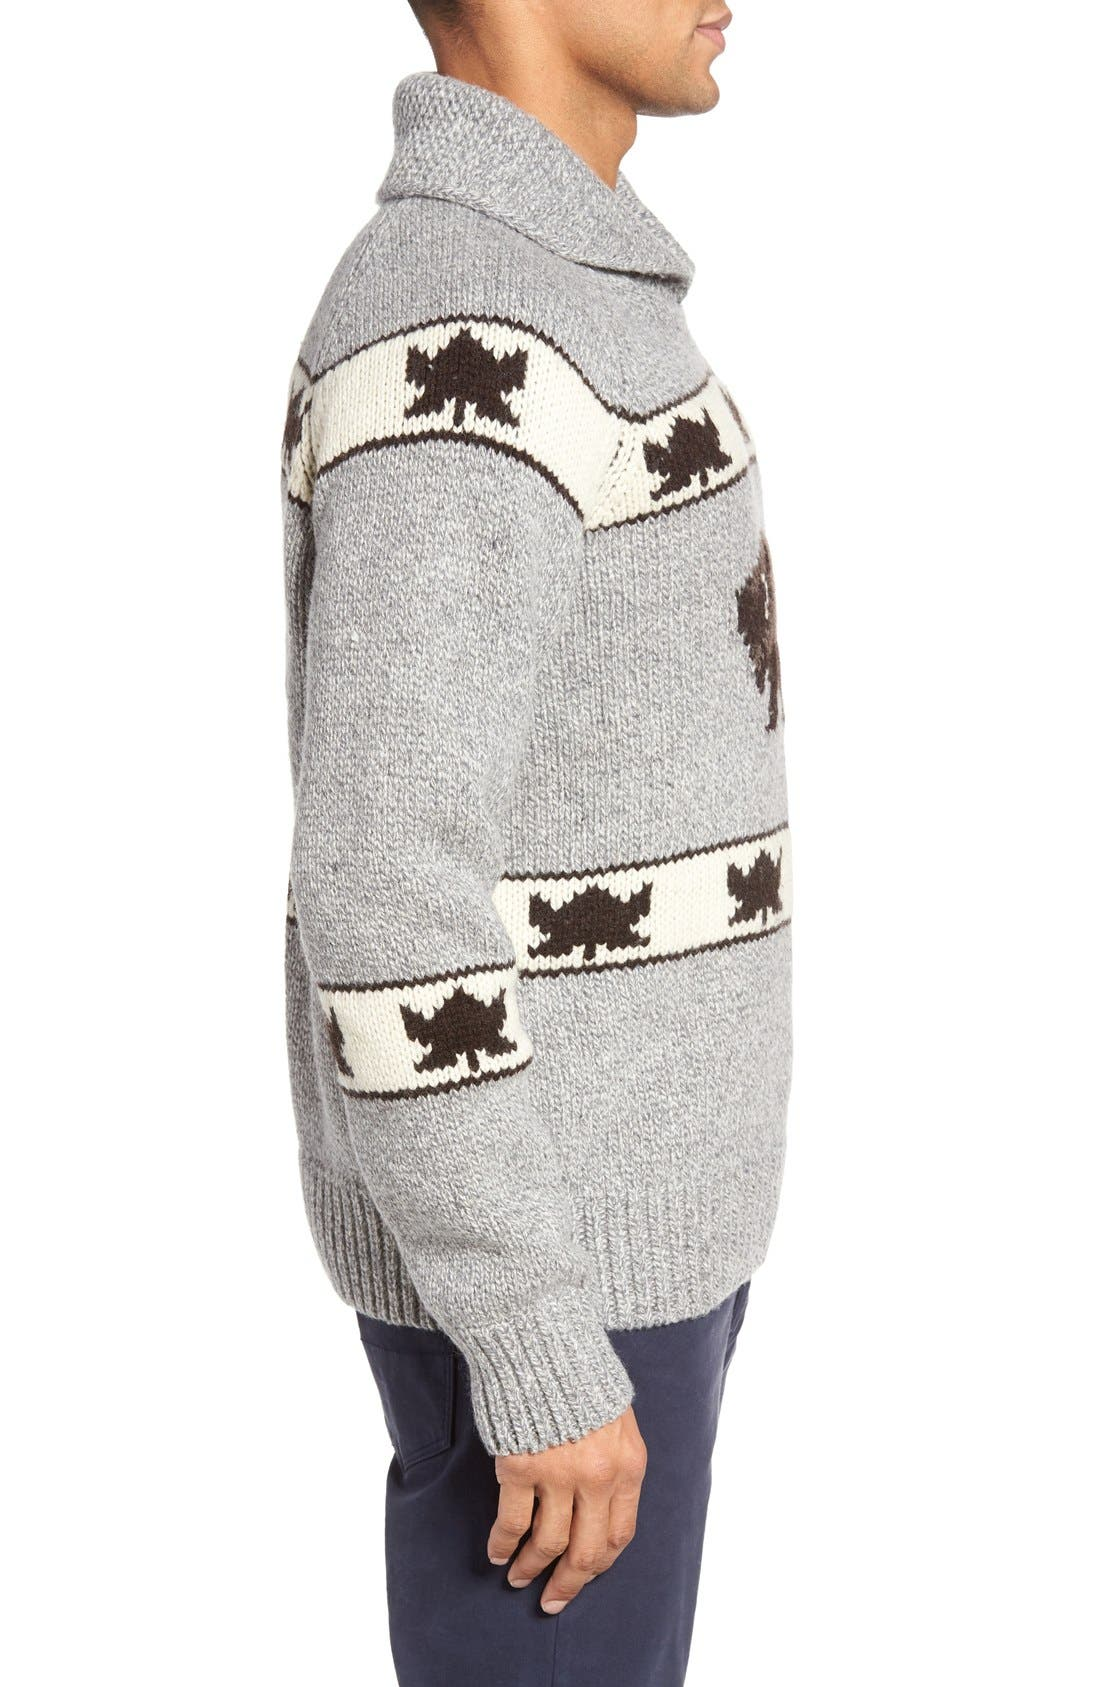 Cowichan Pullover Sweater,                             Alternate thumbnail 3, color,                             Heather Grey